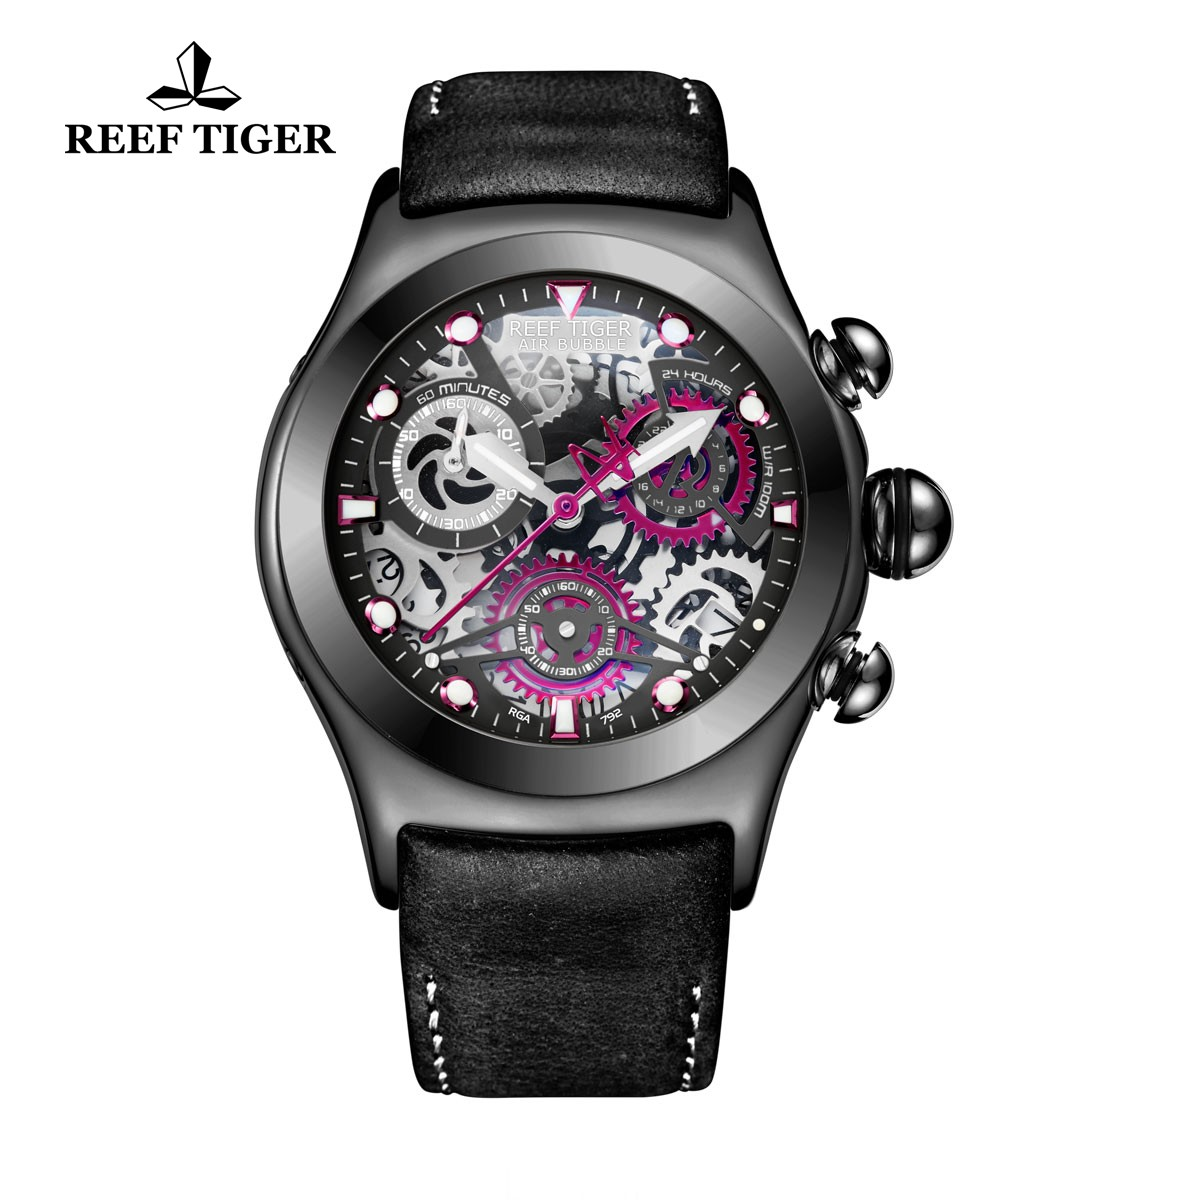 Reef Tiger Big Bang Sport Casual Watches Chronograph Watch PVD Case Leather Strap RGA792-BBB